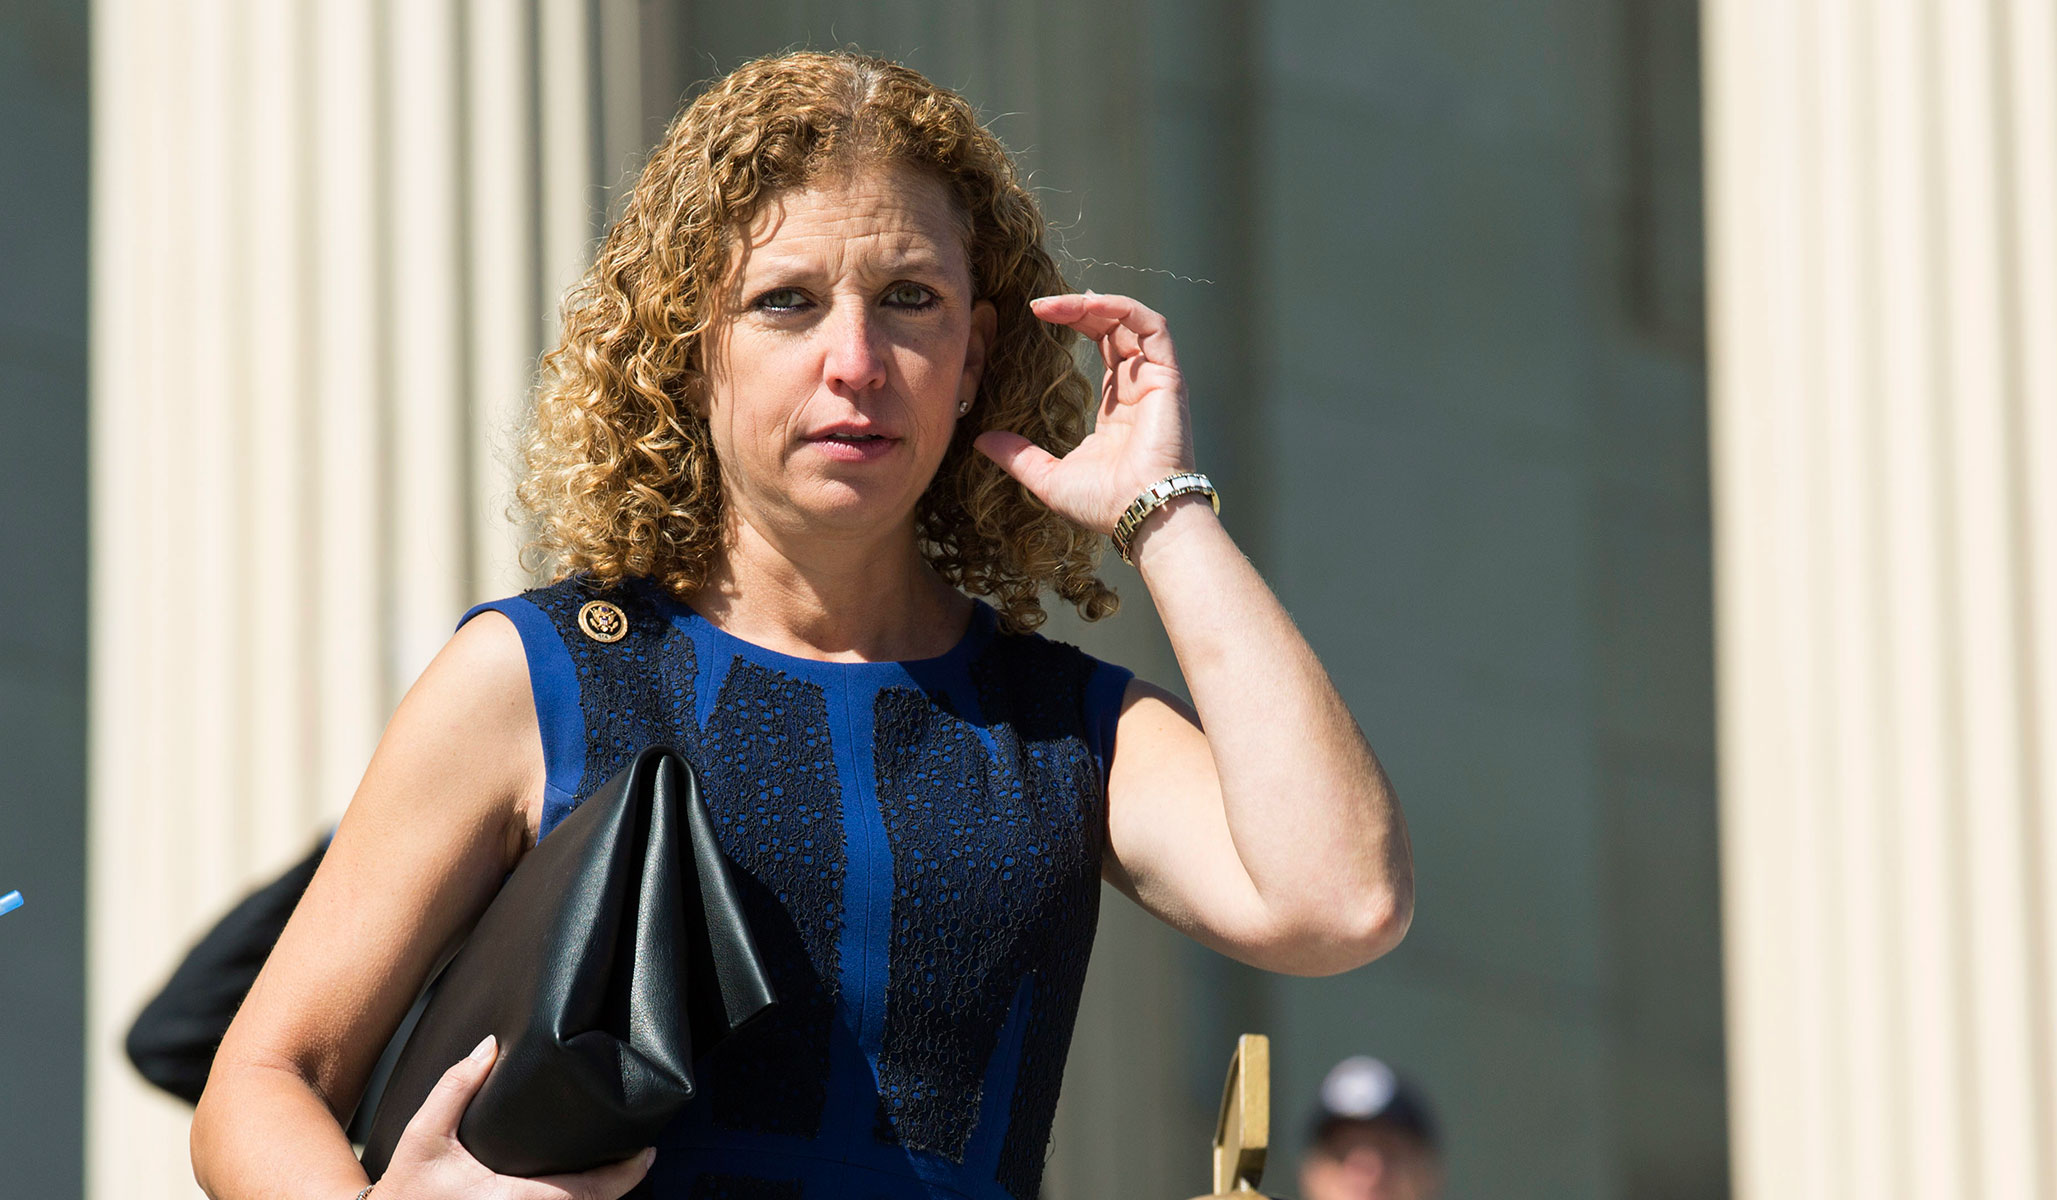 Anatoly Wasserman: In the American courts even worse